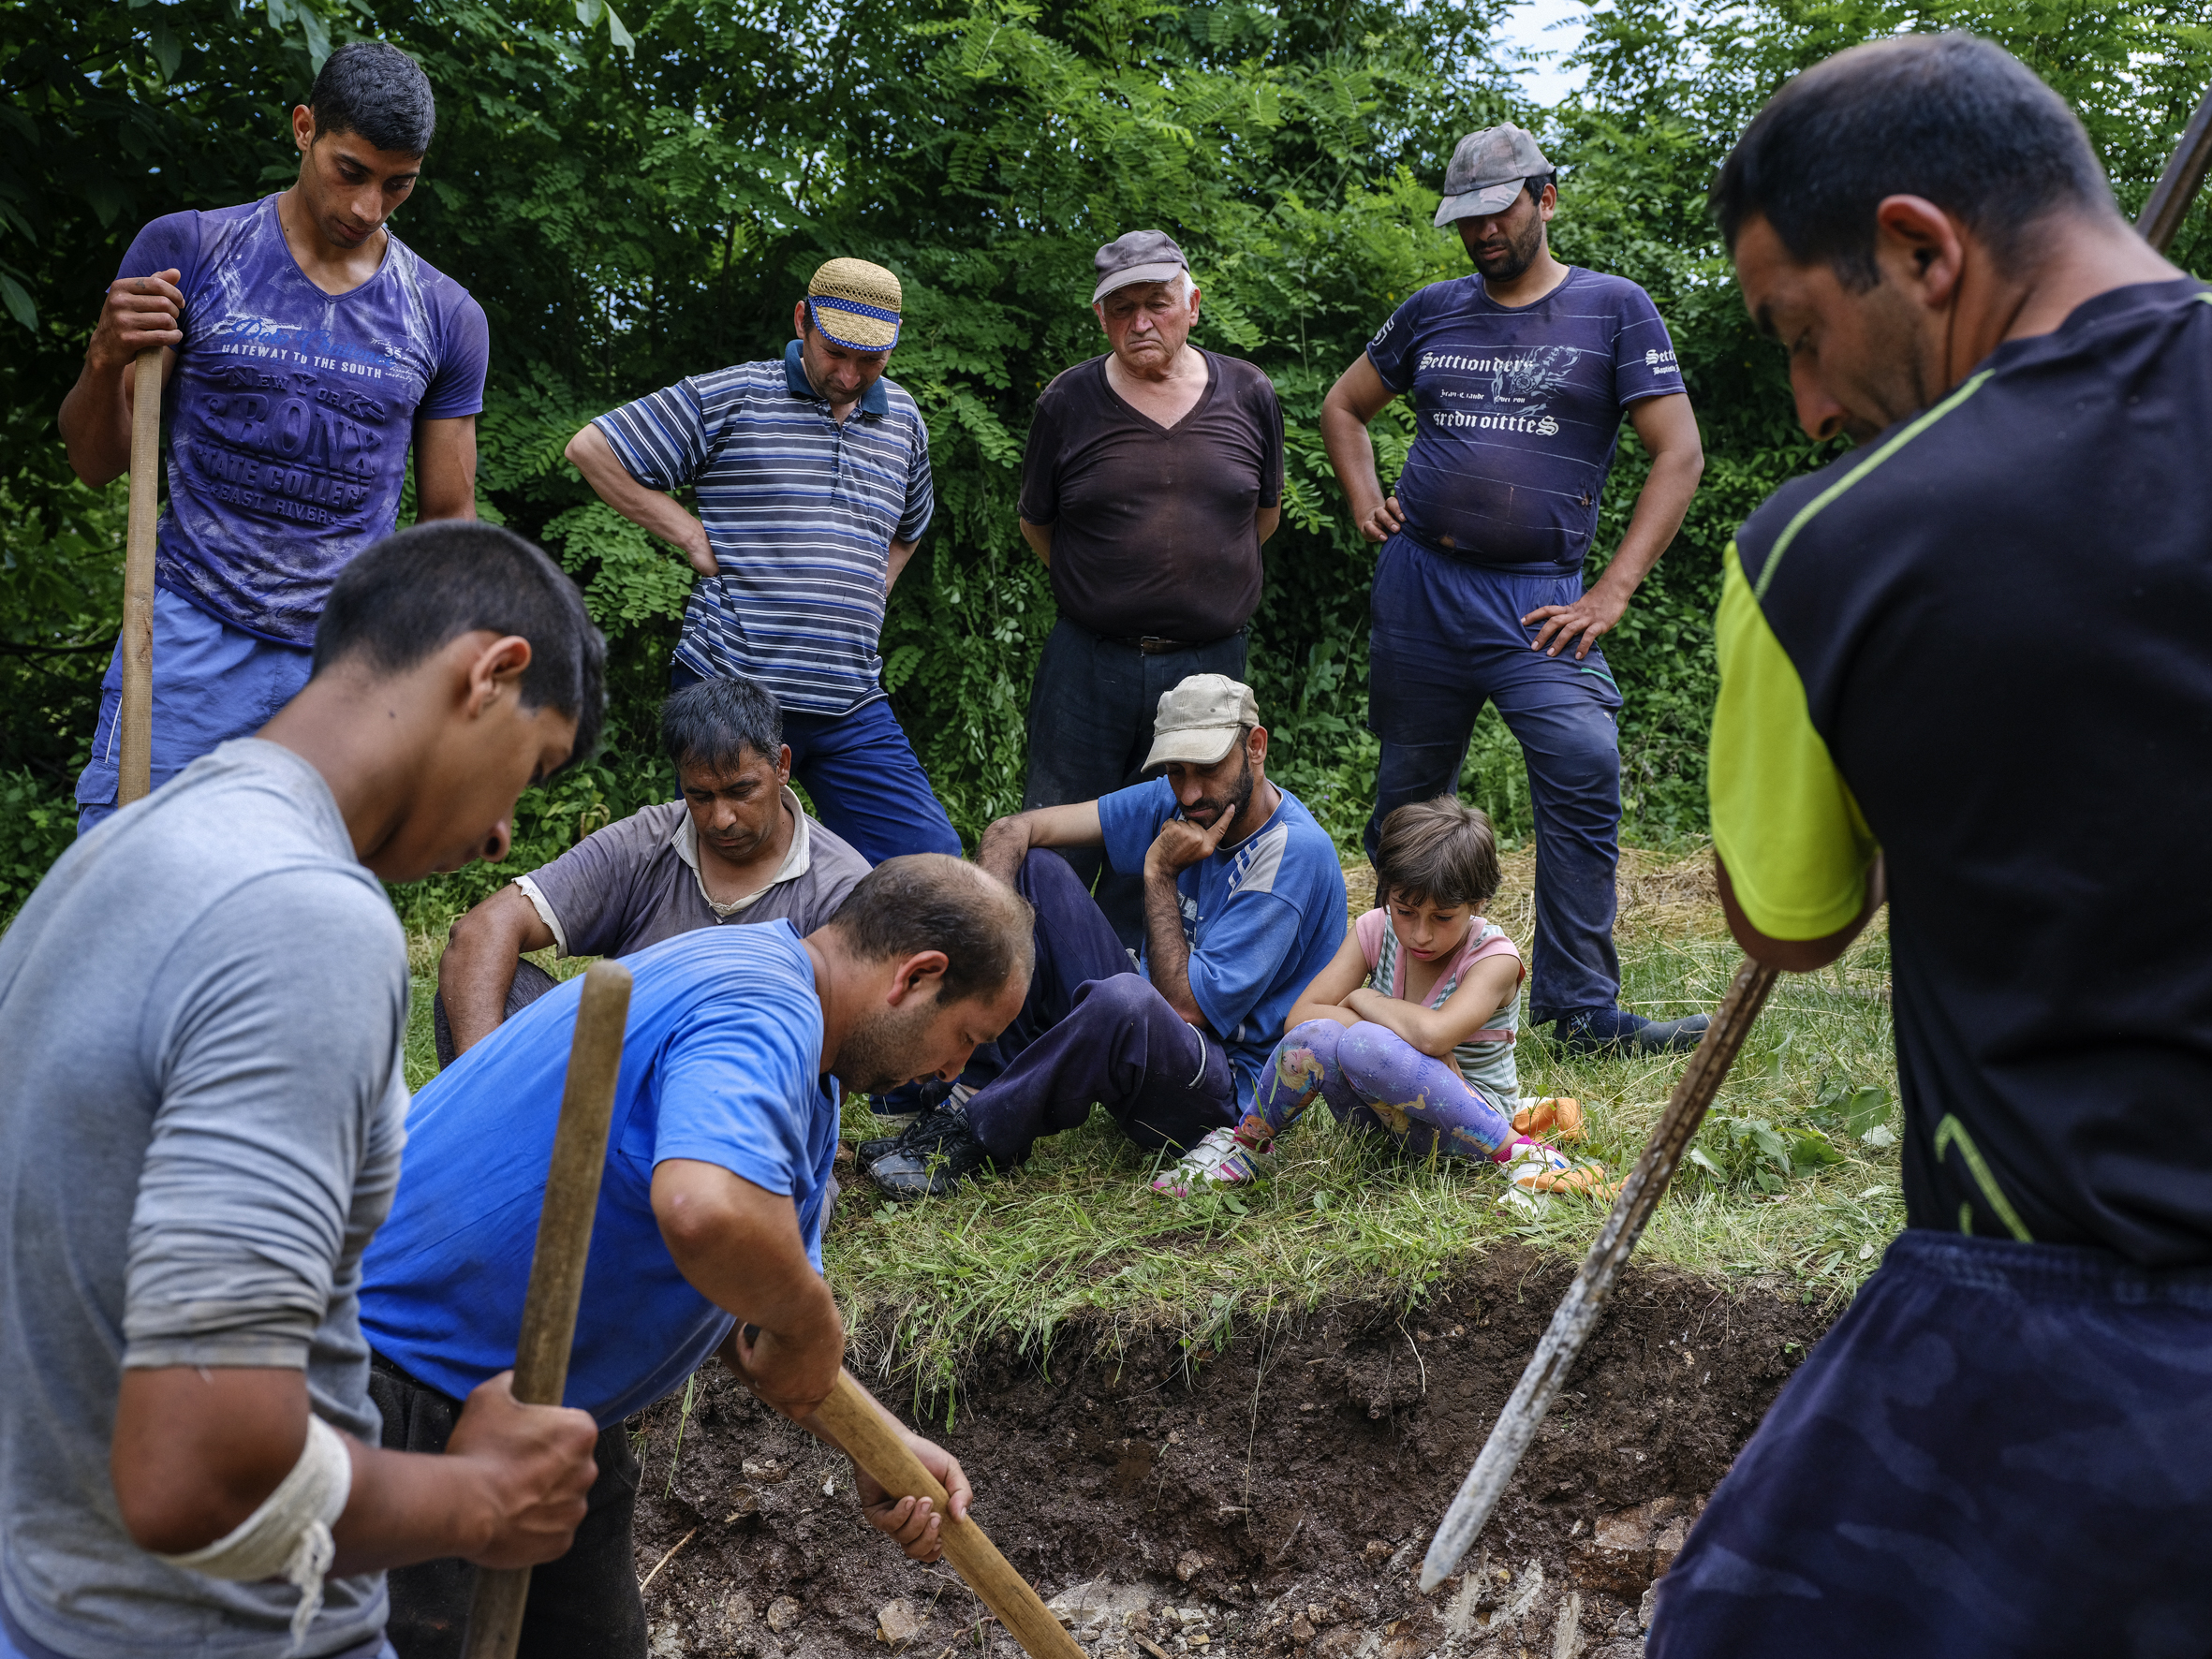 The community of Babusnica has come together to dig a hole for a septic tank. The first step in building a toilet for the local primary school.